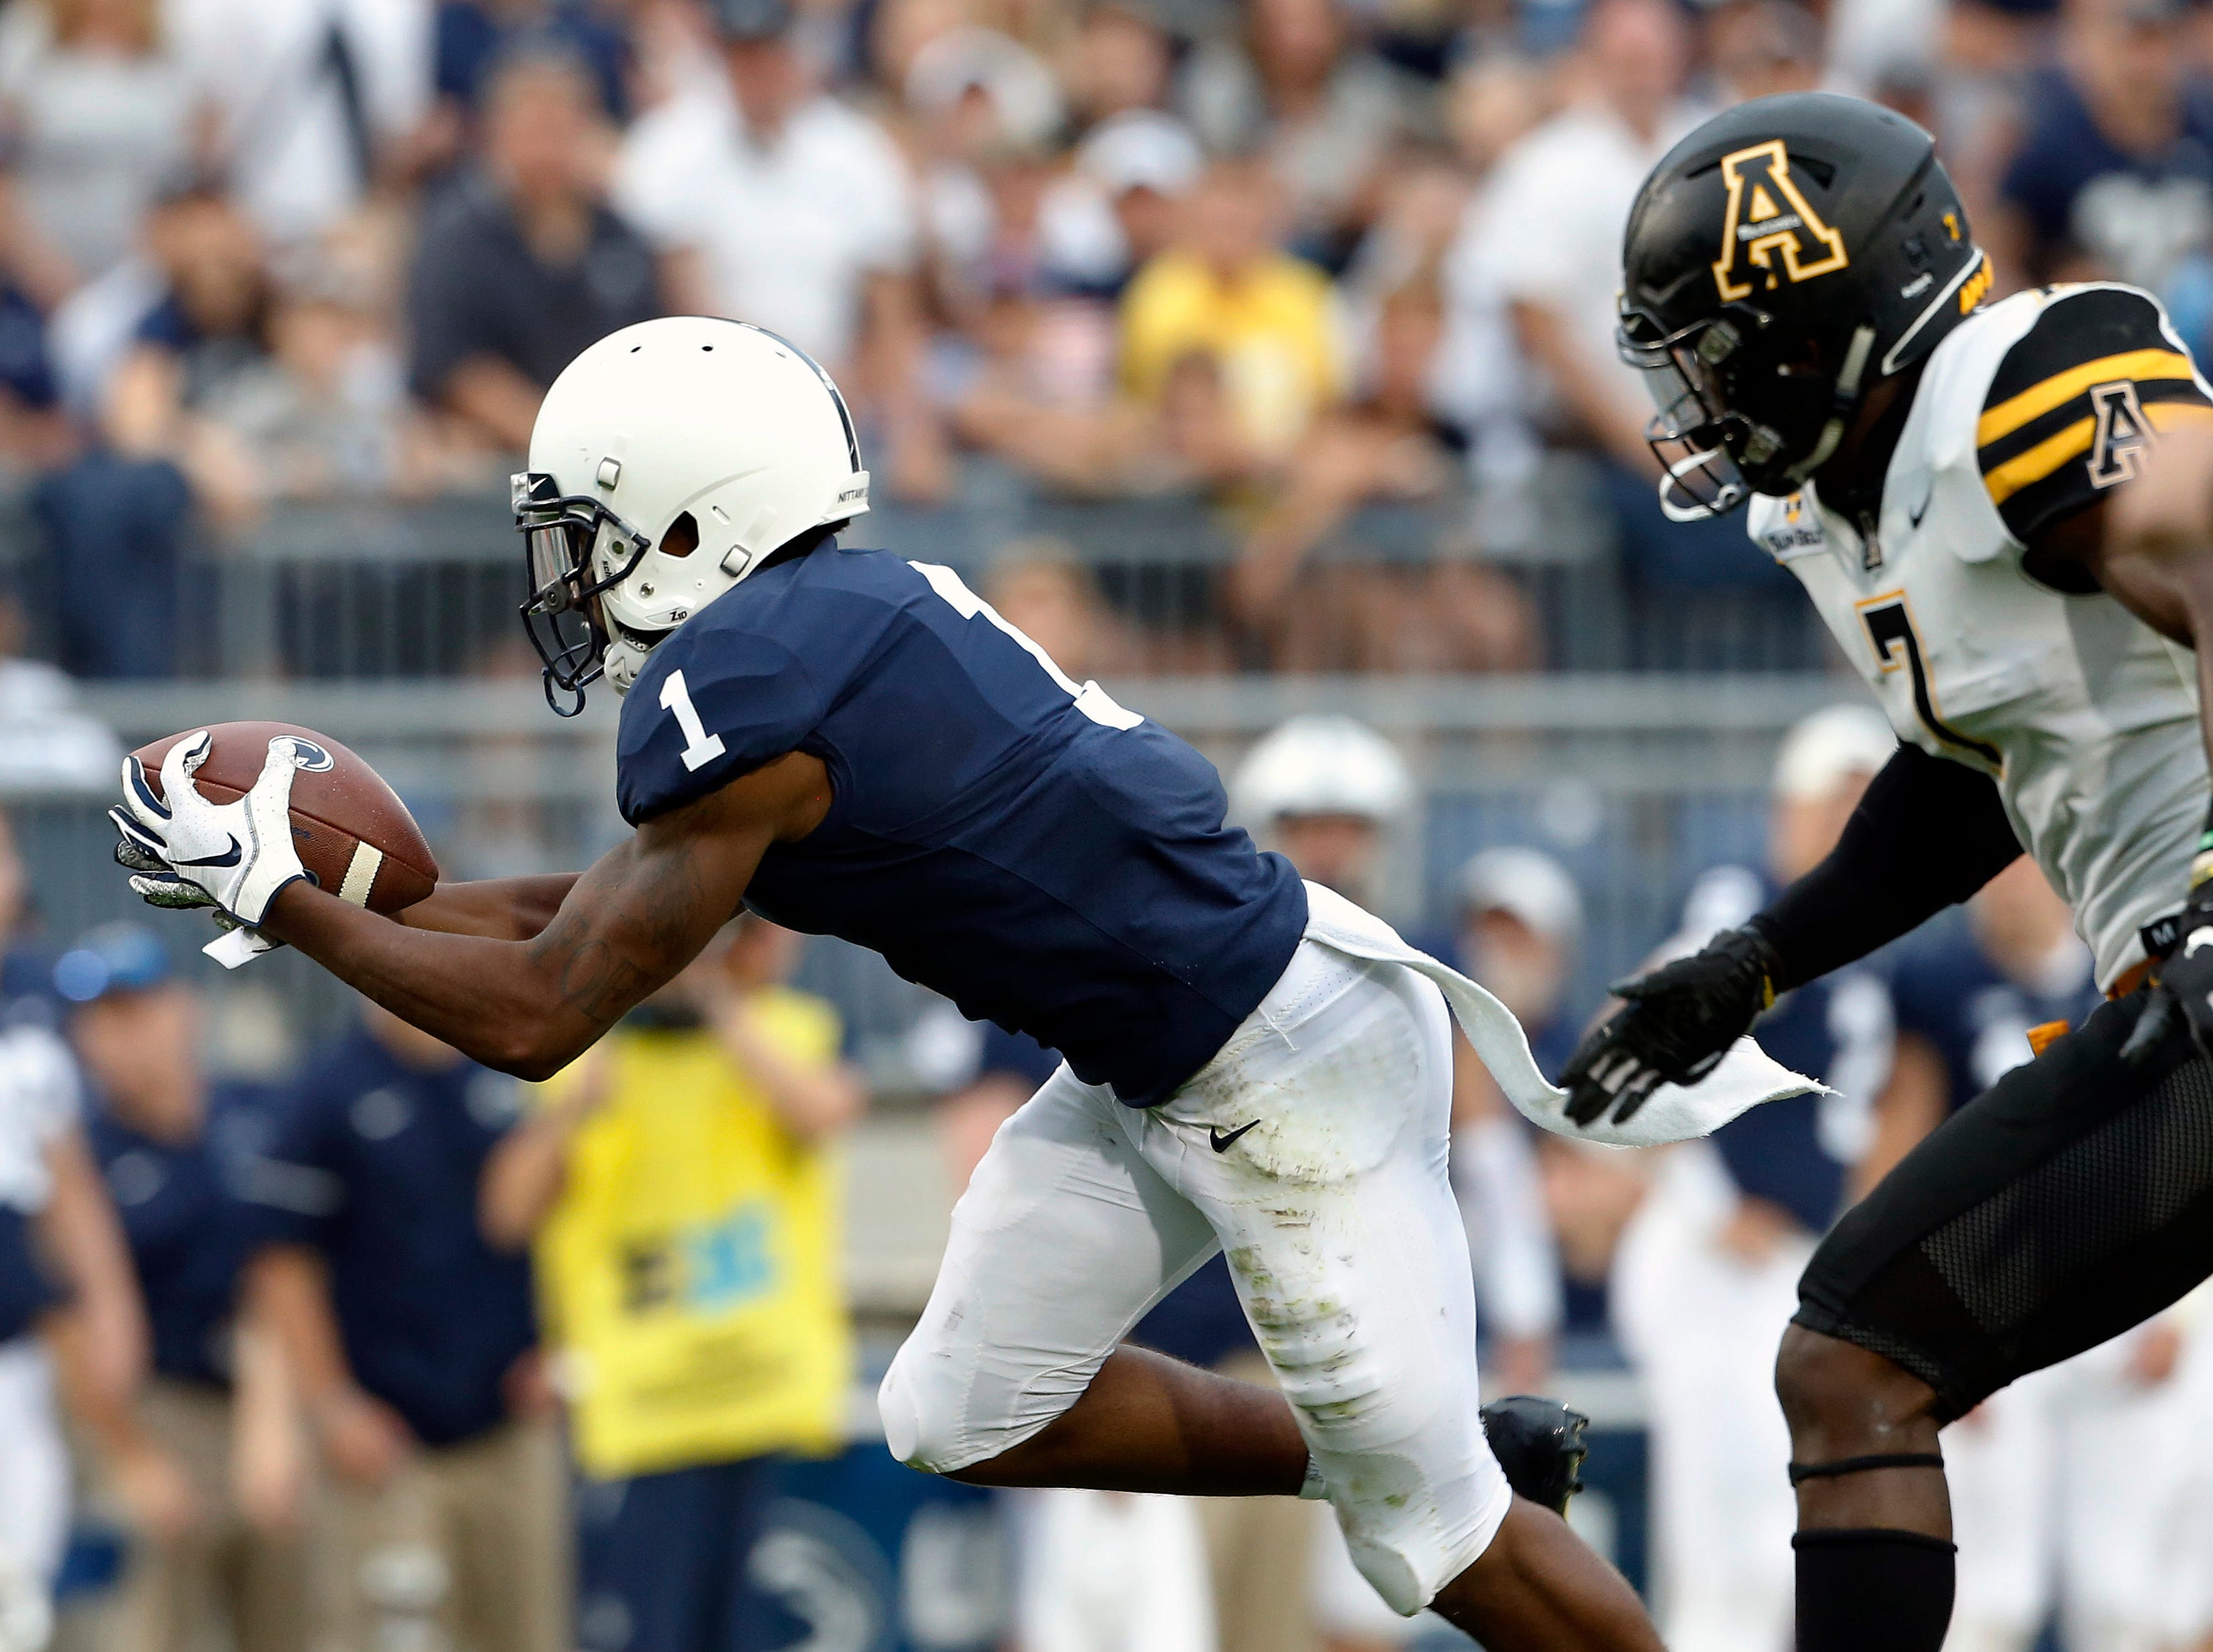 Penn State's KJ Hamler (1) makes a catch in front of Appalachian State's Josh Thomas (7) during the second half of an NCAA college football game in State College, Pa., Saturday, Sept. 1, 2018. Penn State won 45-38 in overtime. (AP Photo/Chris Knight)